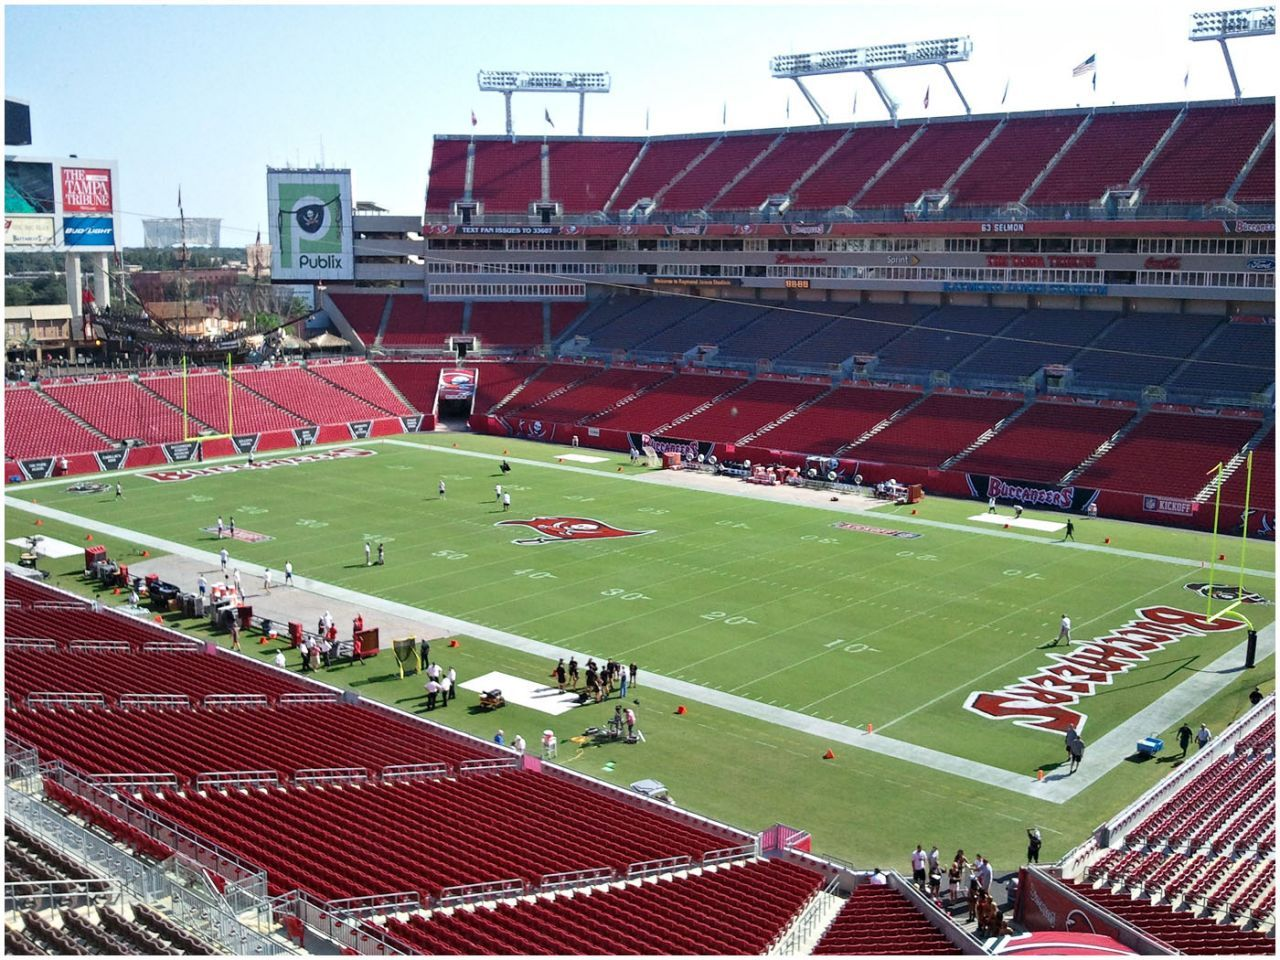 *THE* best stadium in the NFL - Raymond James (Tampa, FL). Nothing beats the pirate ship! Great times, great times!